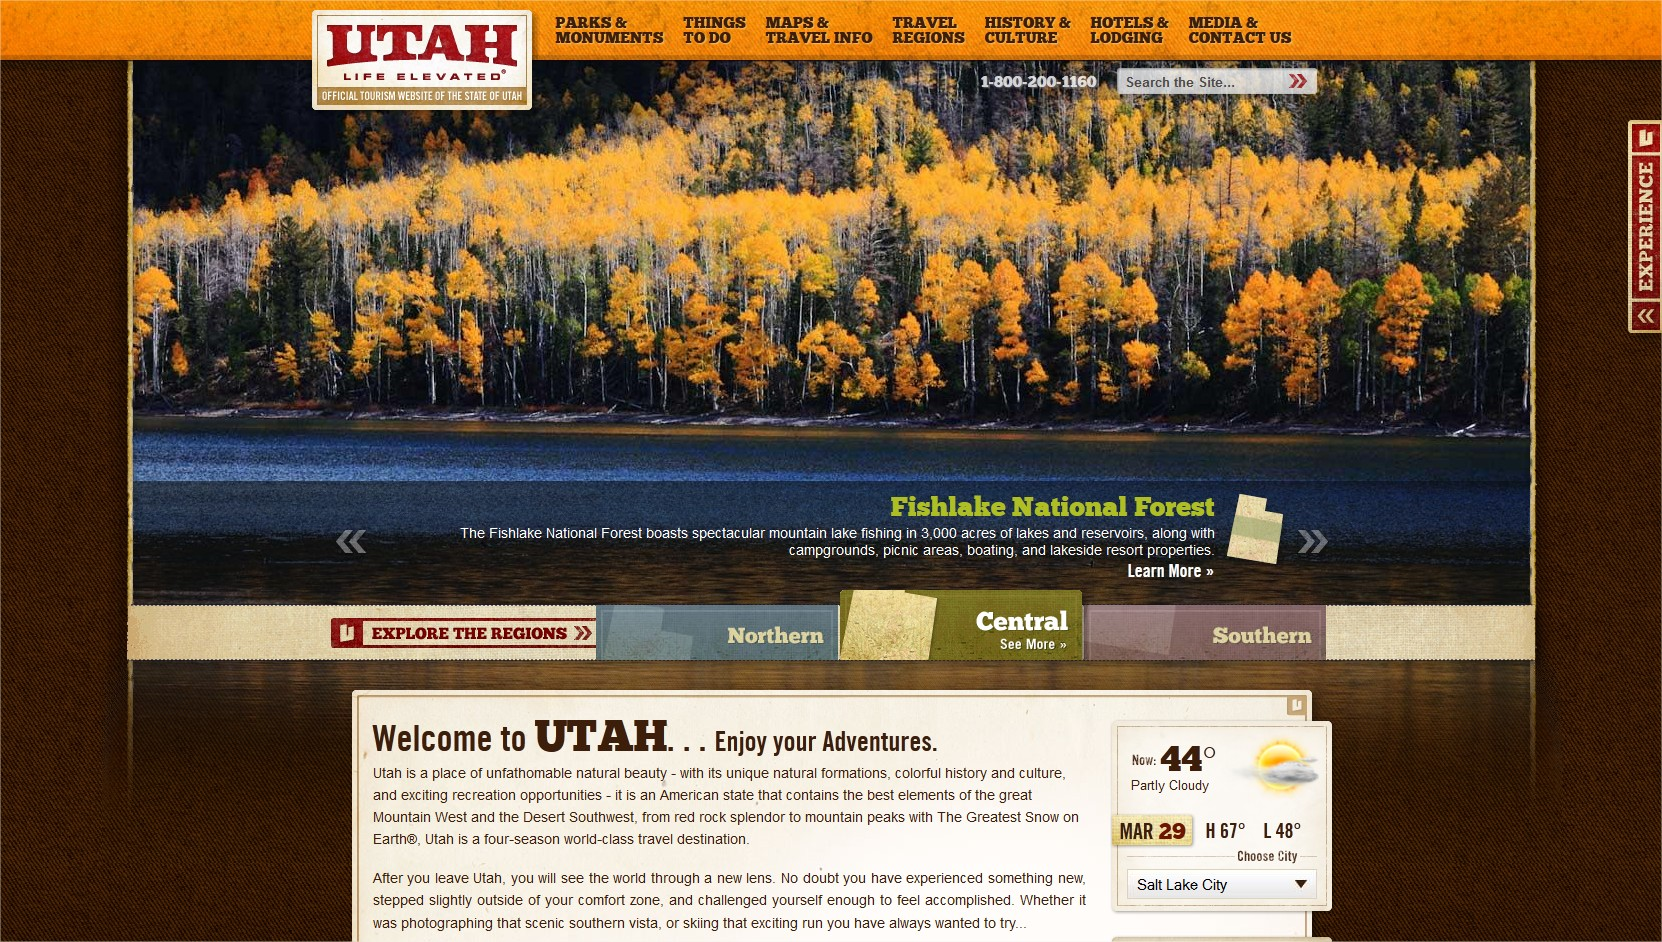 Utah Tourism Website - March 2012 - Summer Imagery